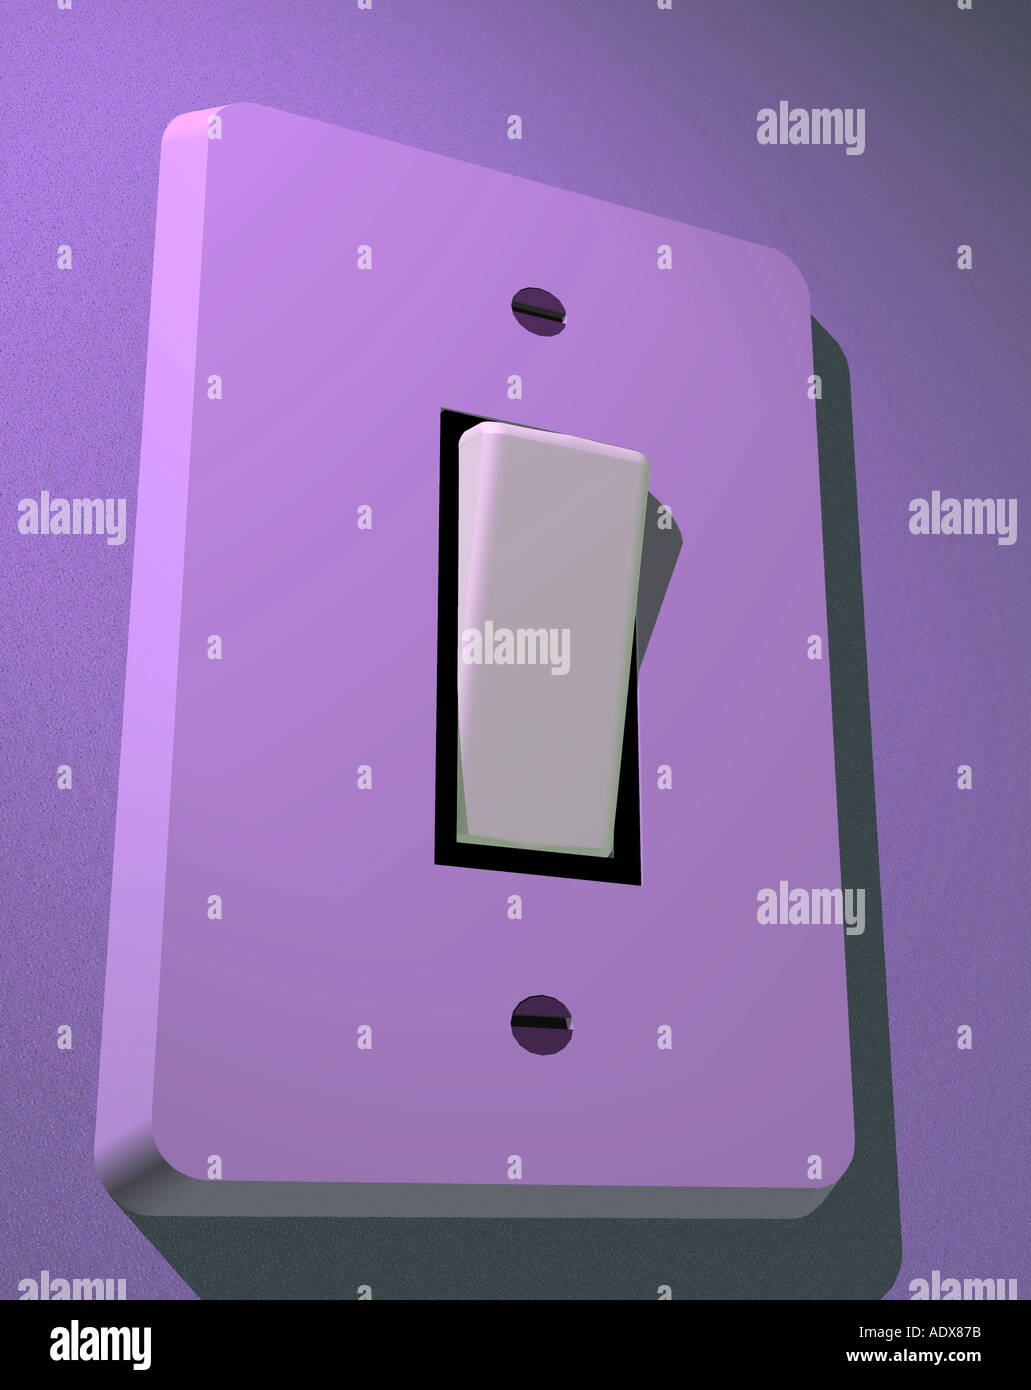 Switch Light Illustrations Purple Switch Light Switches Frame Clic Button Press